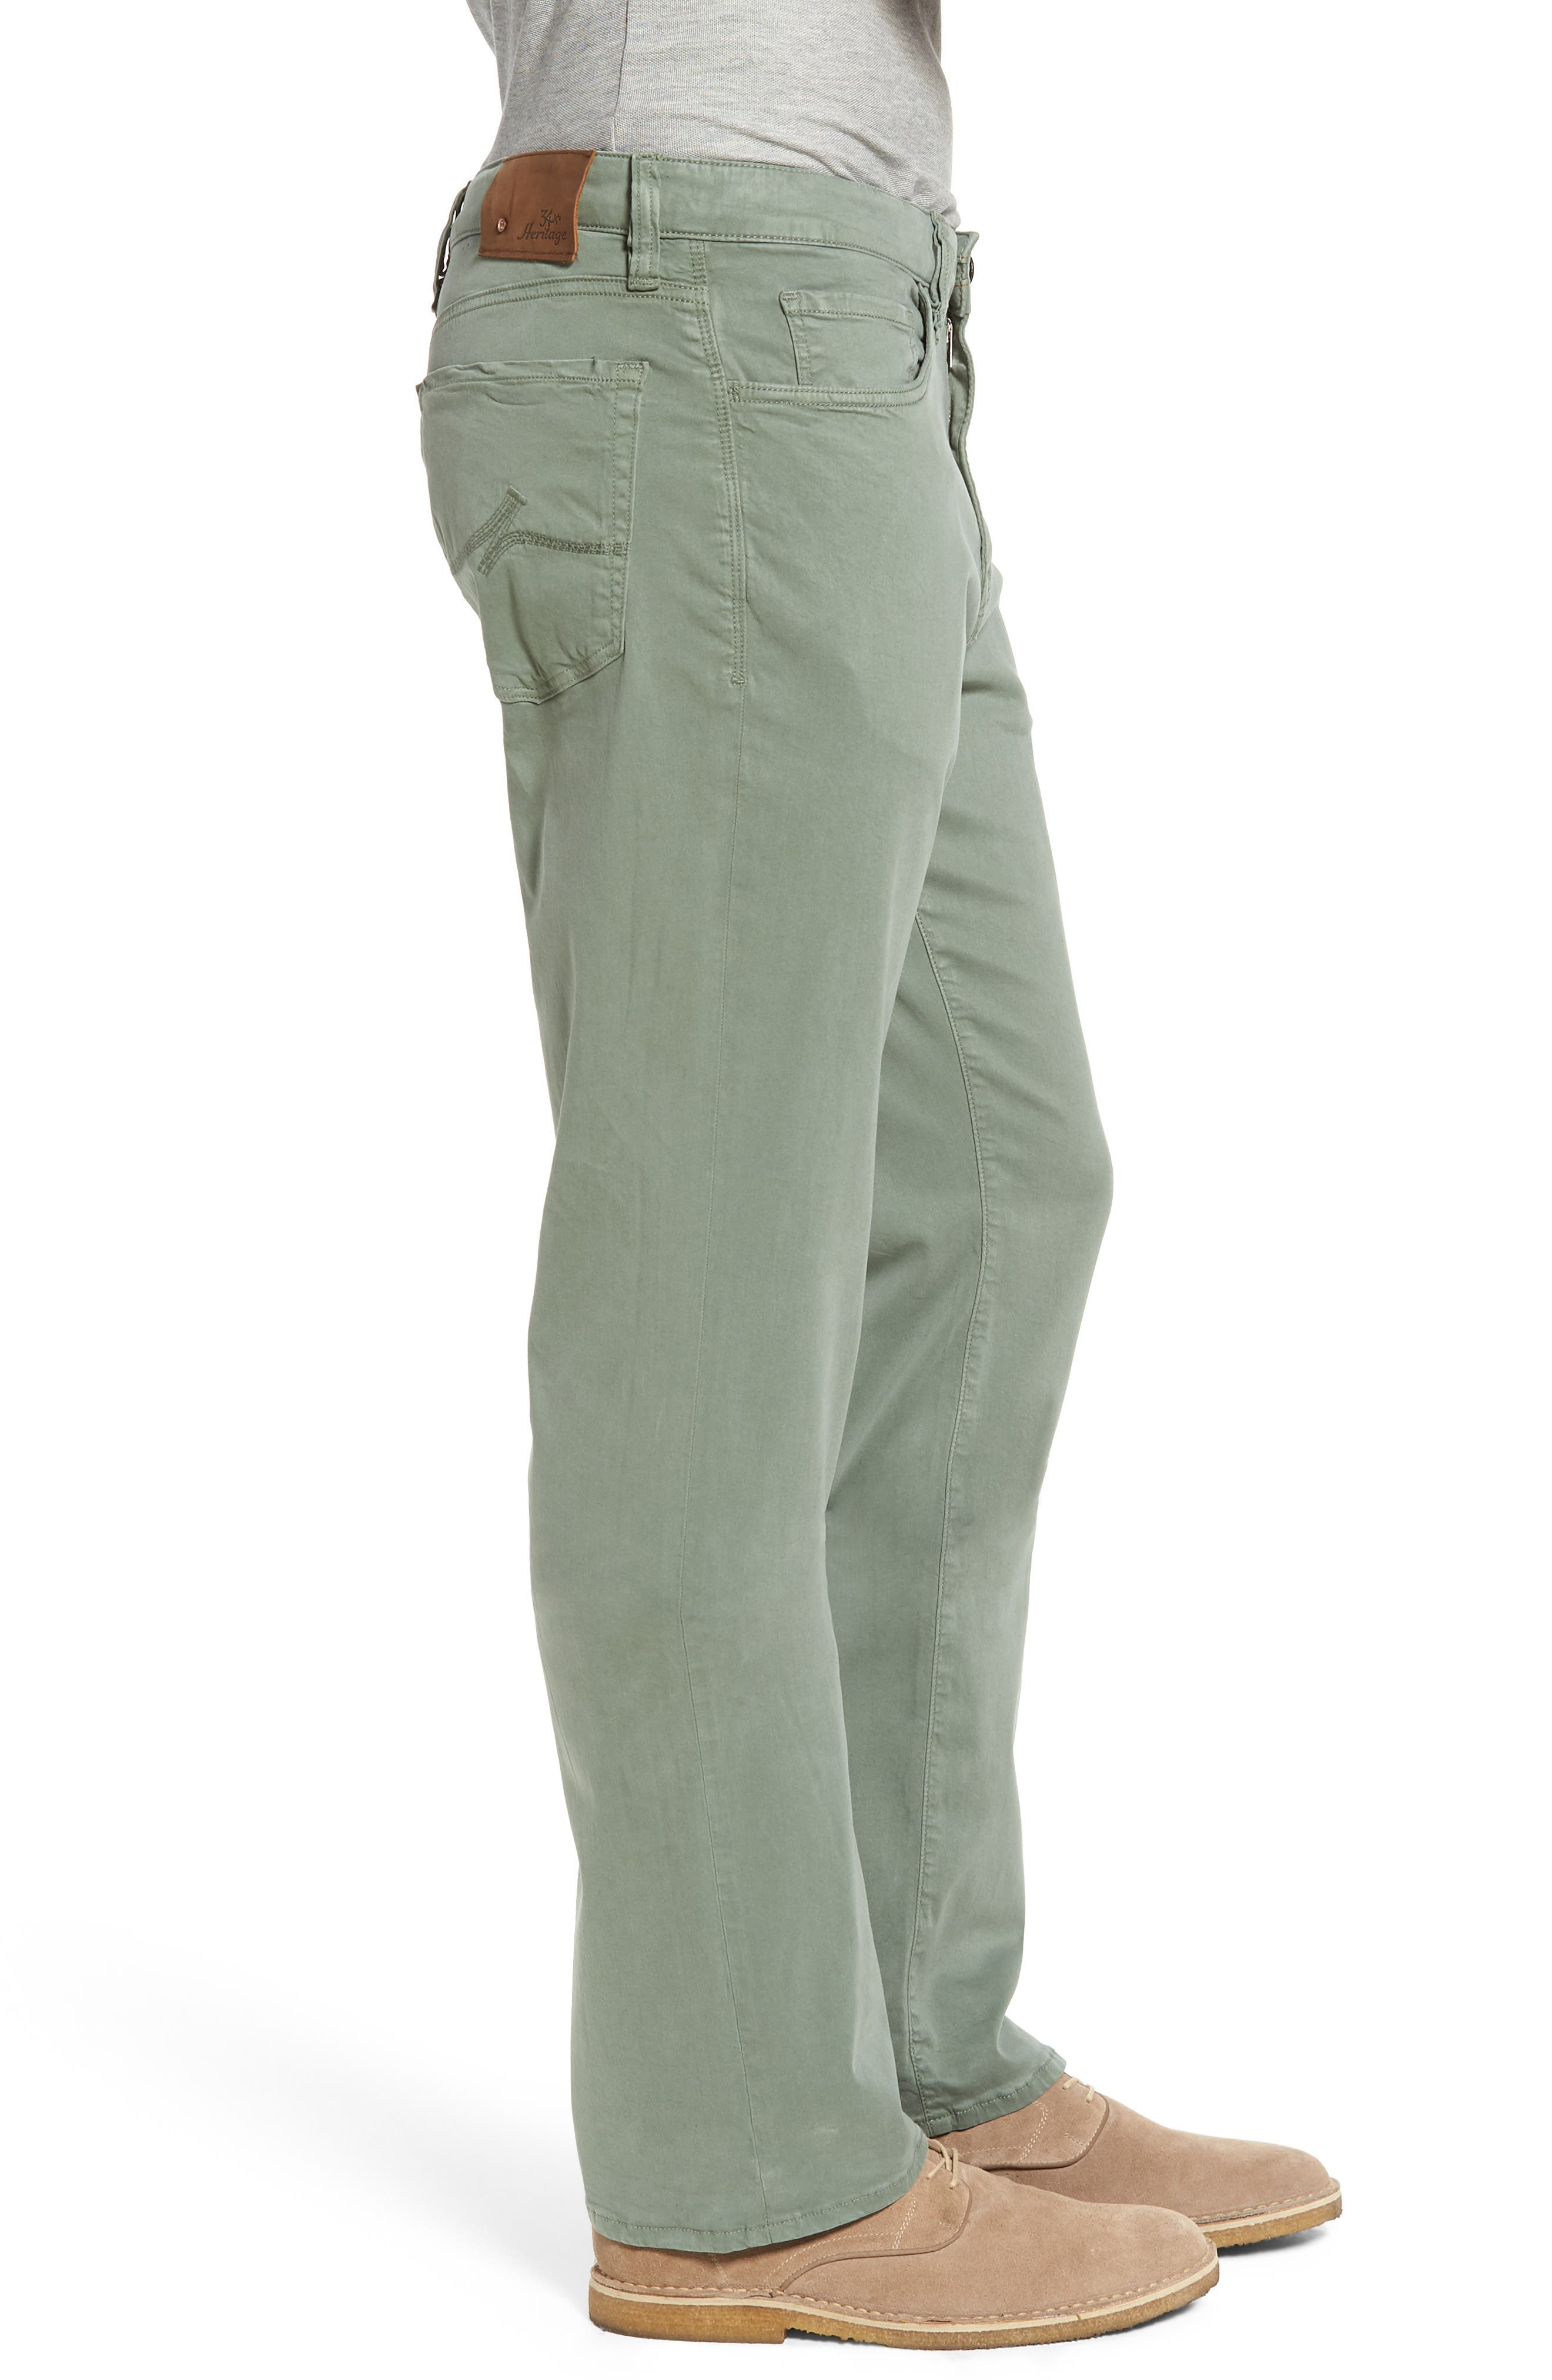 Charisma Relaxed Fit Twill Pants,                             Alternate thumbnail 3, color,                             Moss Twill